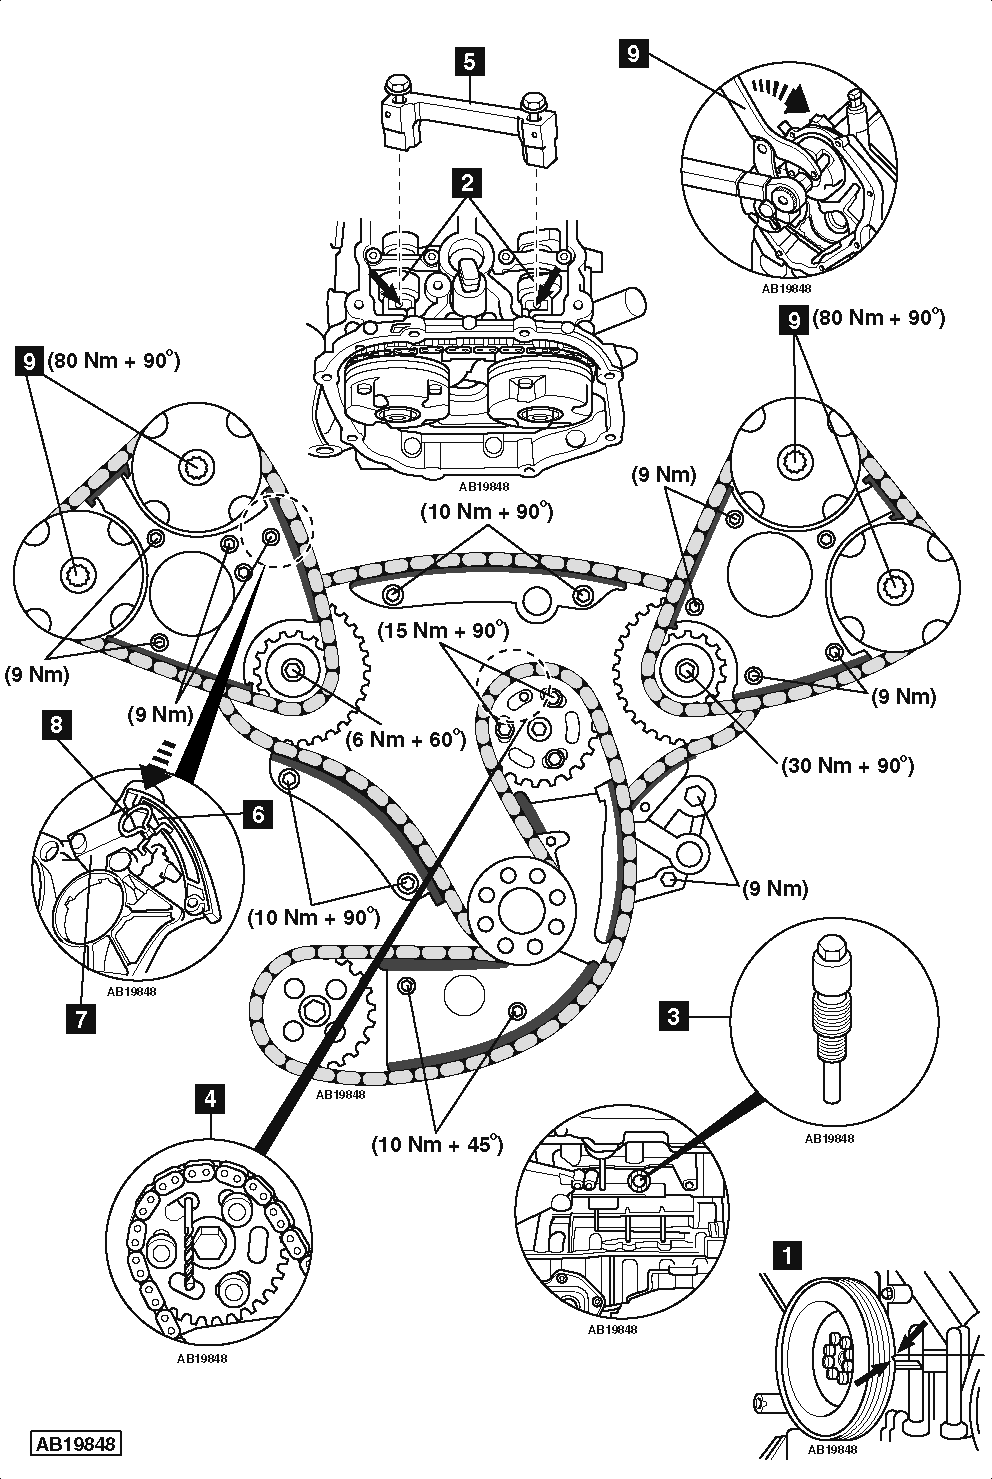 2005 jetta engine diagram